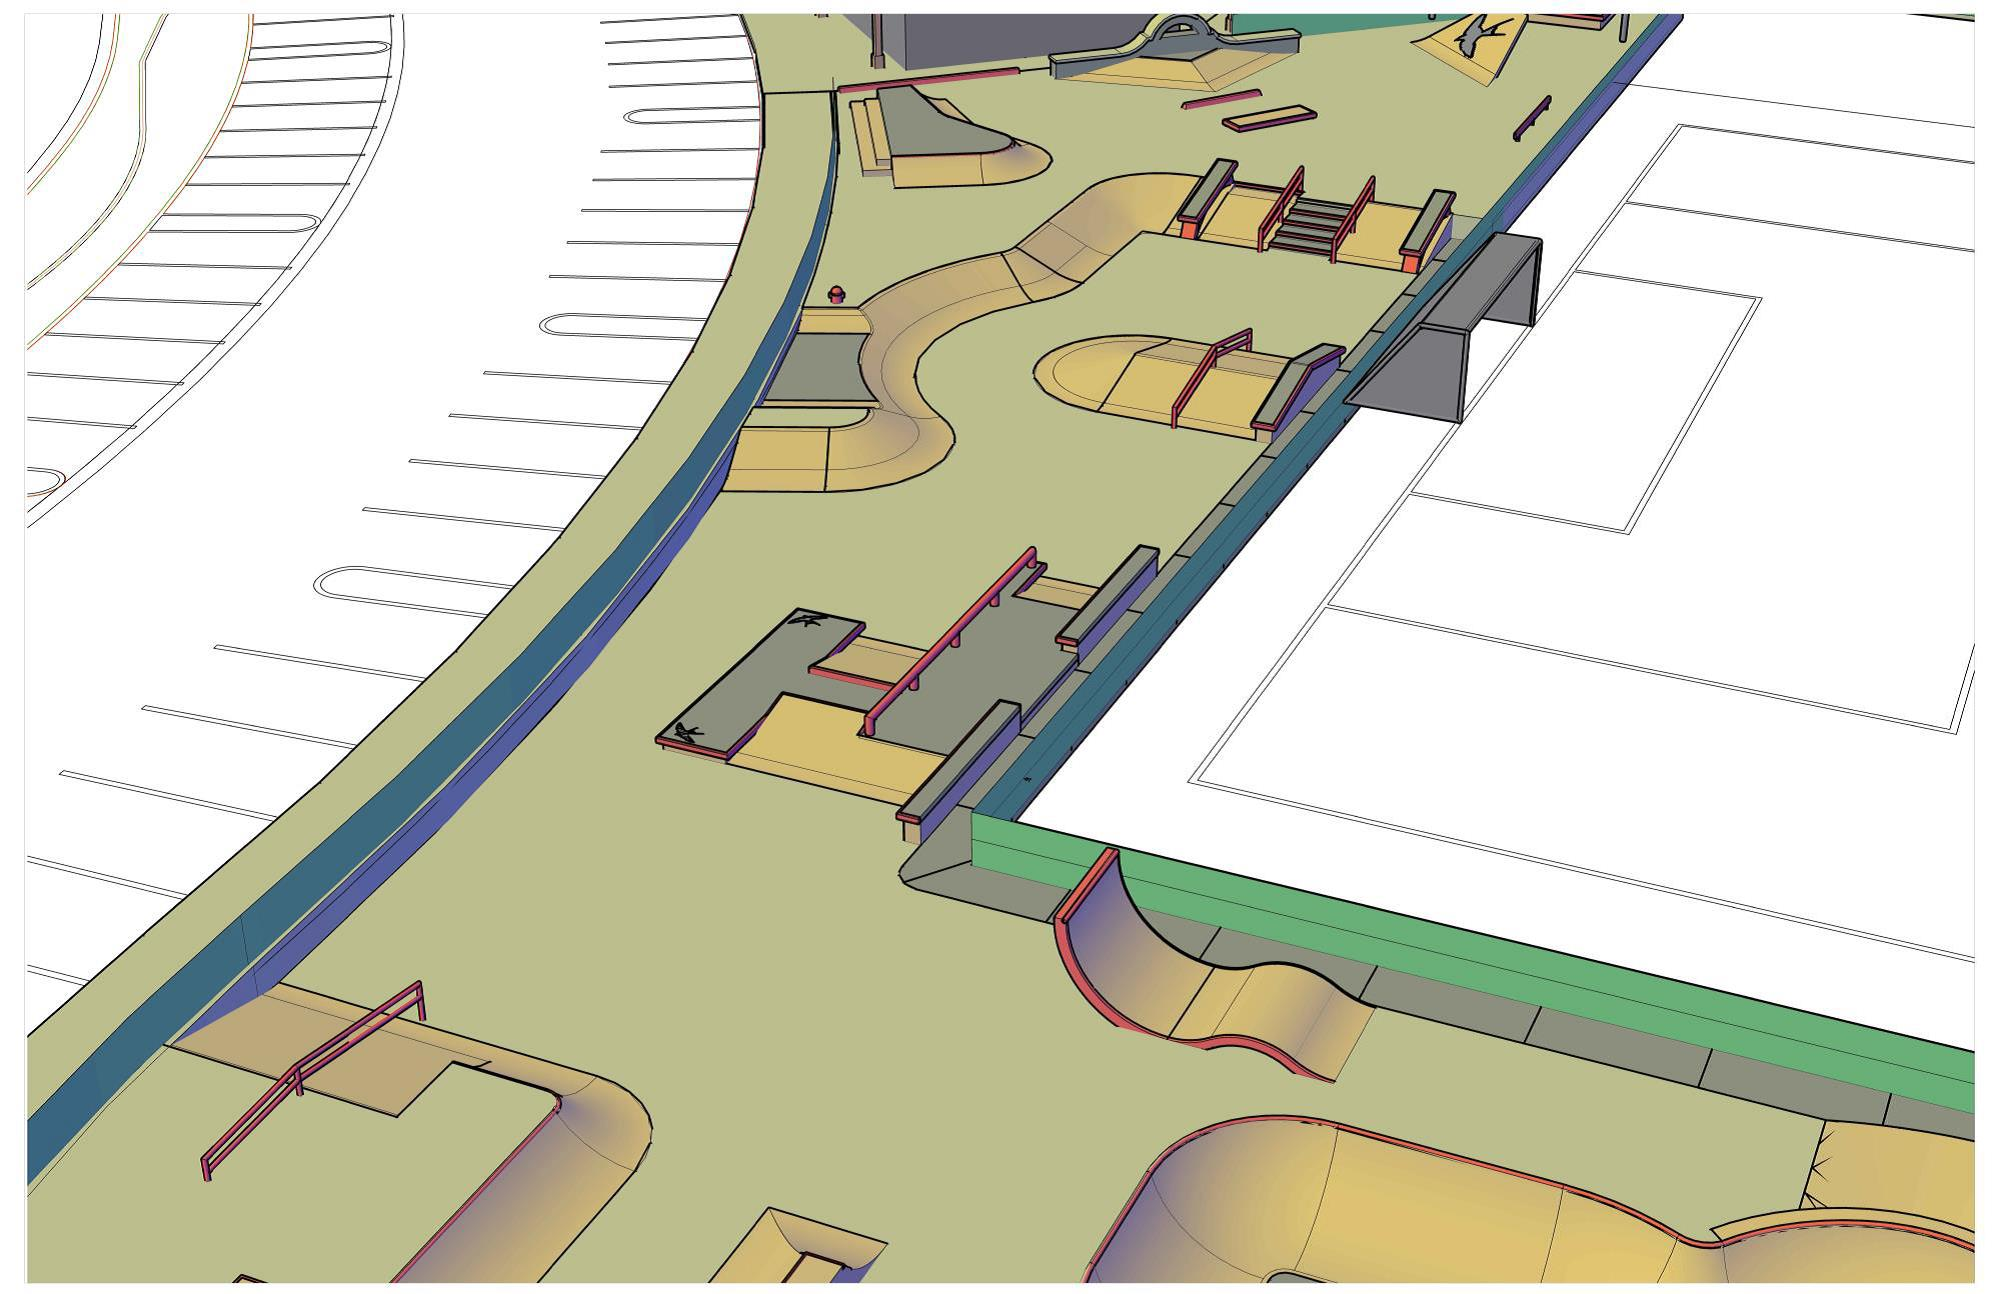 A rendering of the potential skate park design, as presented to the Parks & Rec commission. Image: Courtesy of Spohn Ranch